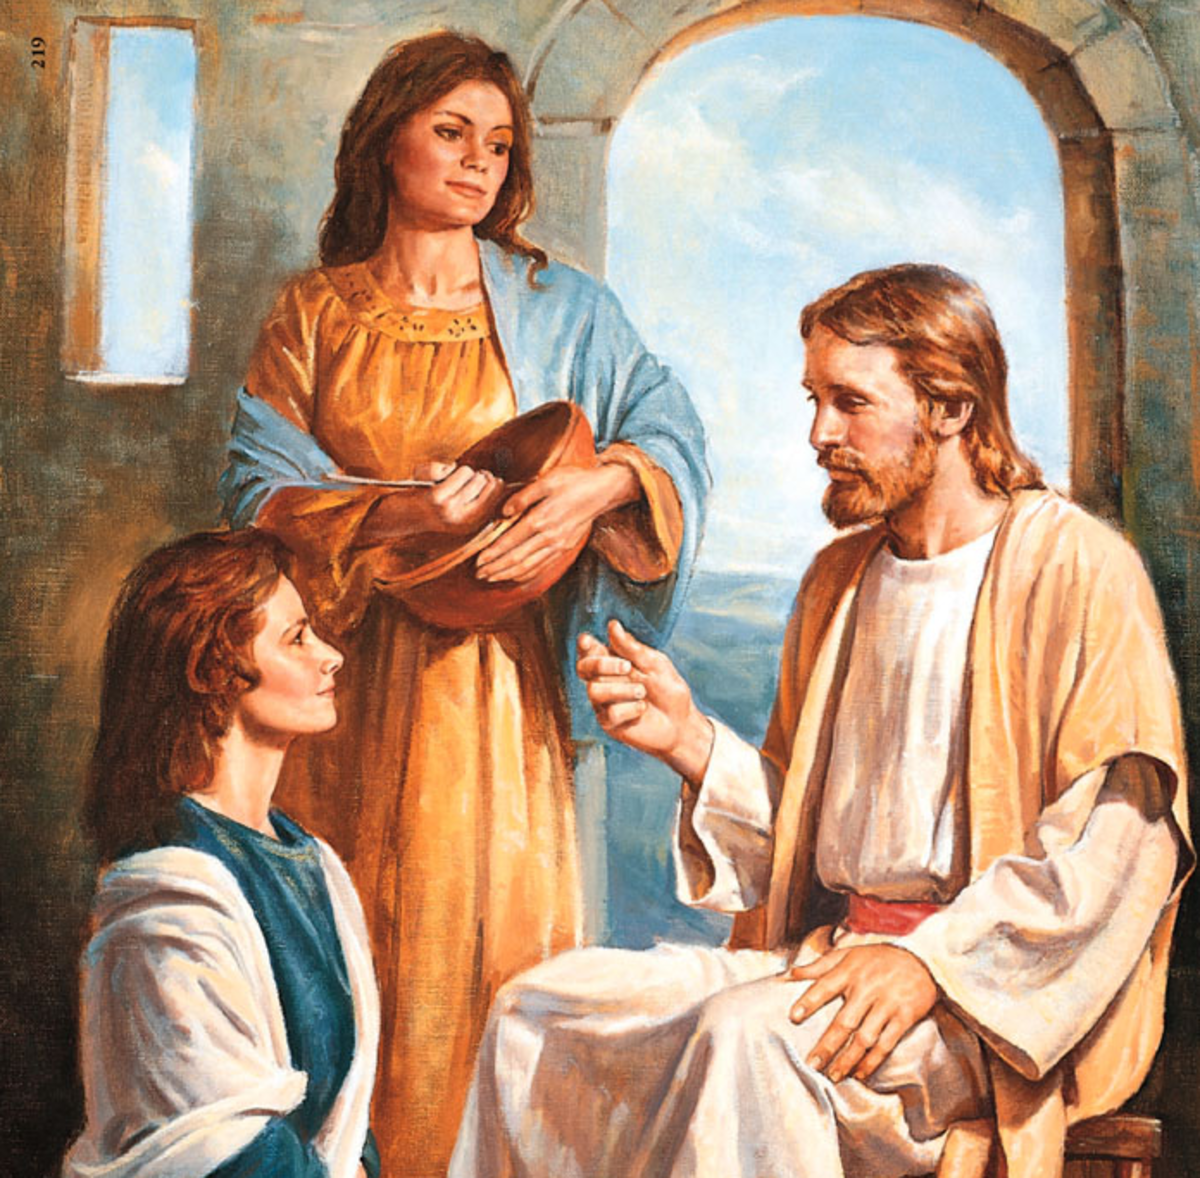 The Women of Christ have always had a divine commission, by the Lord Himself, to assist in the building of His Kingdom.